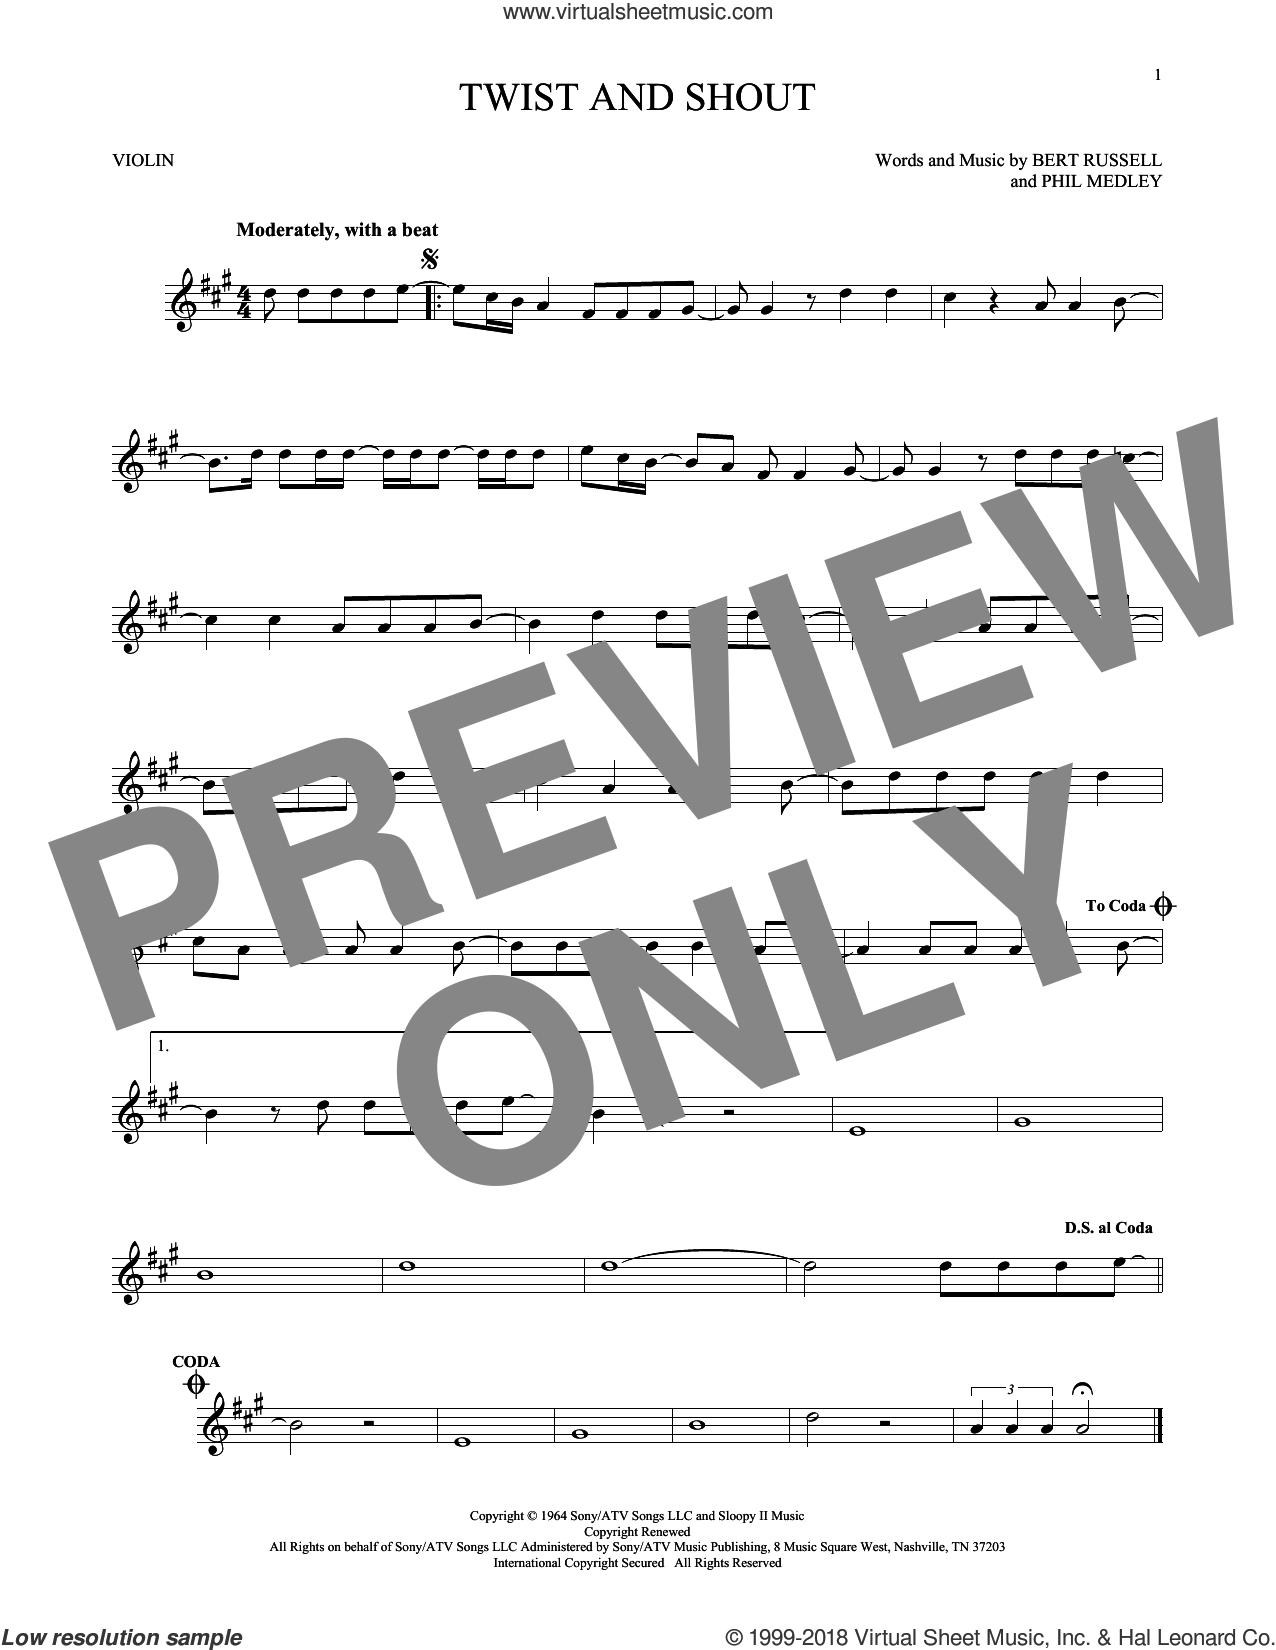 Twist And Shout sheet music for violin solo by Phil Medley